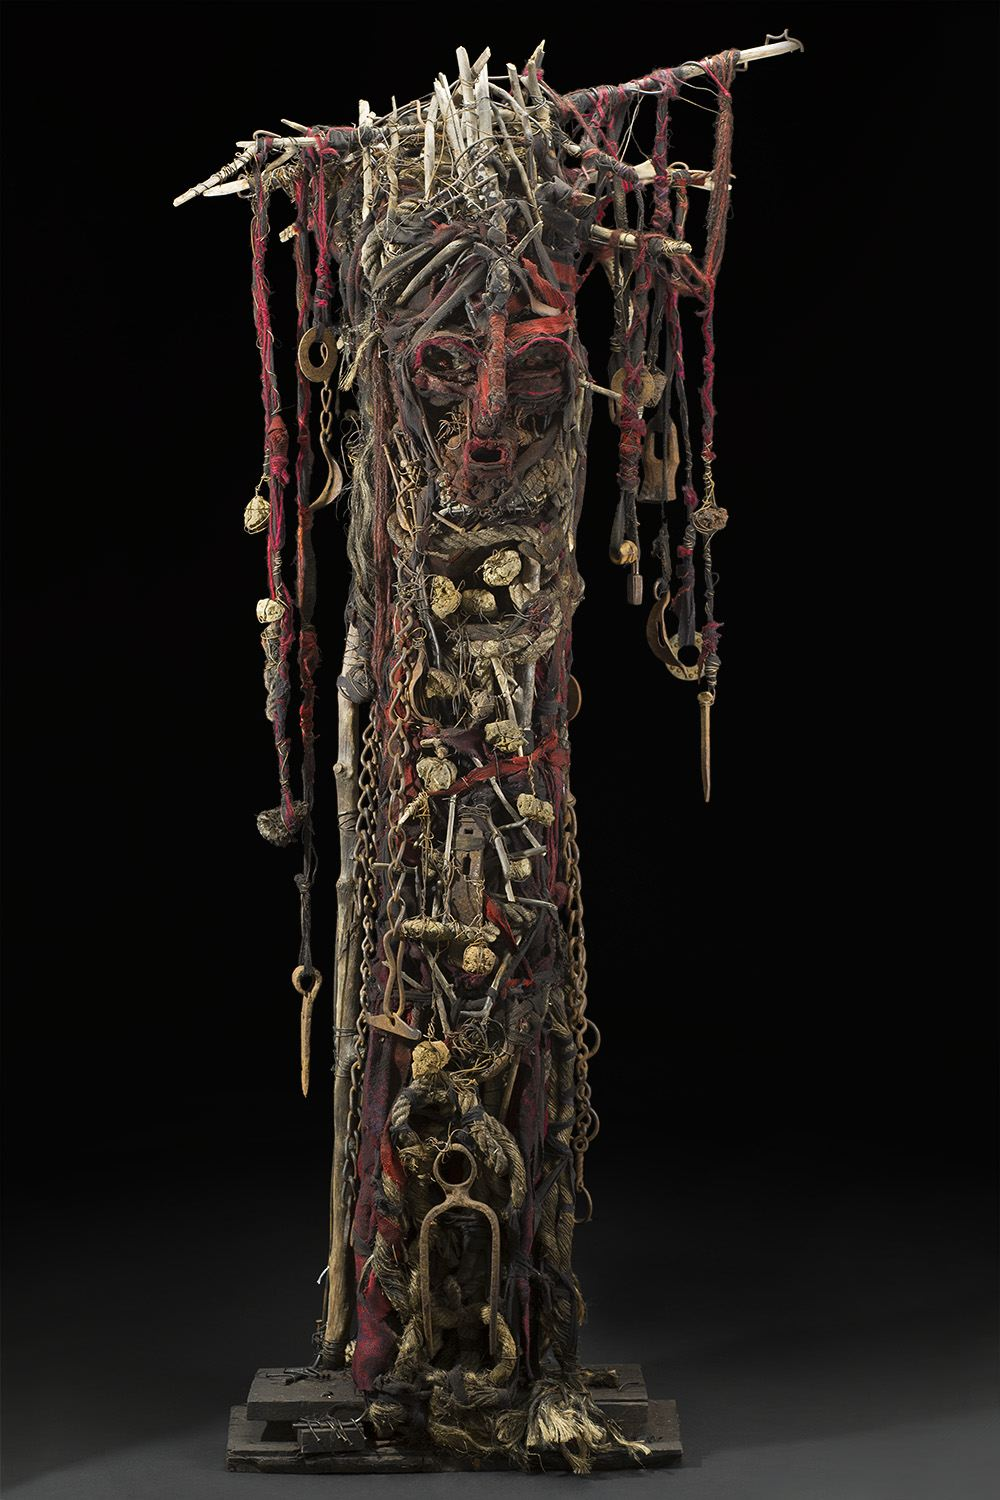 Sylvain and Ghyslaine Staelens    Totem   , 2015 Wood, metal, cloth, found objects 66 x 29 x 17 inches 167.6 x 73.7 x 43.2 cm GSS 49